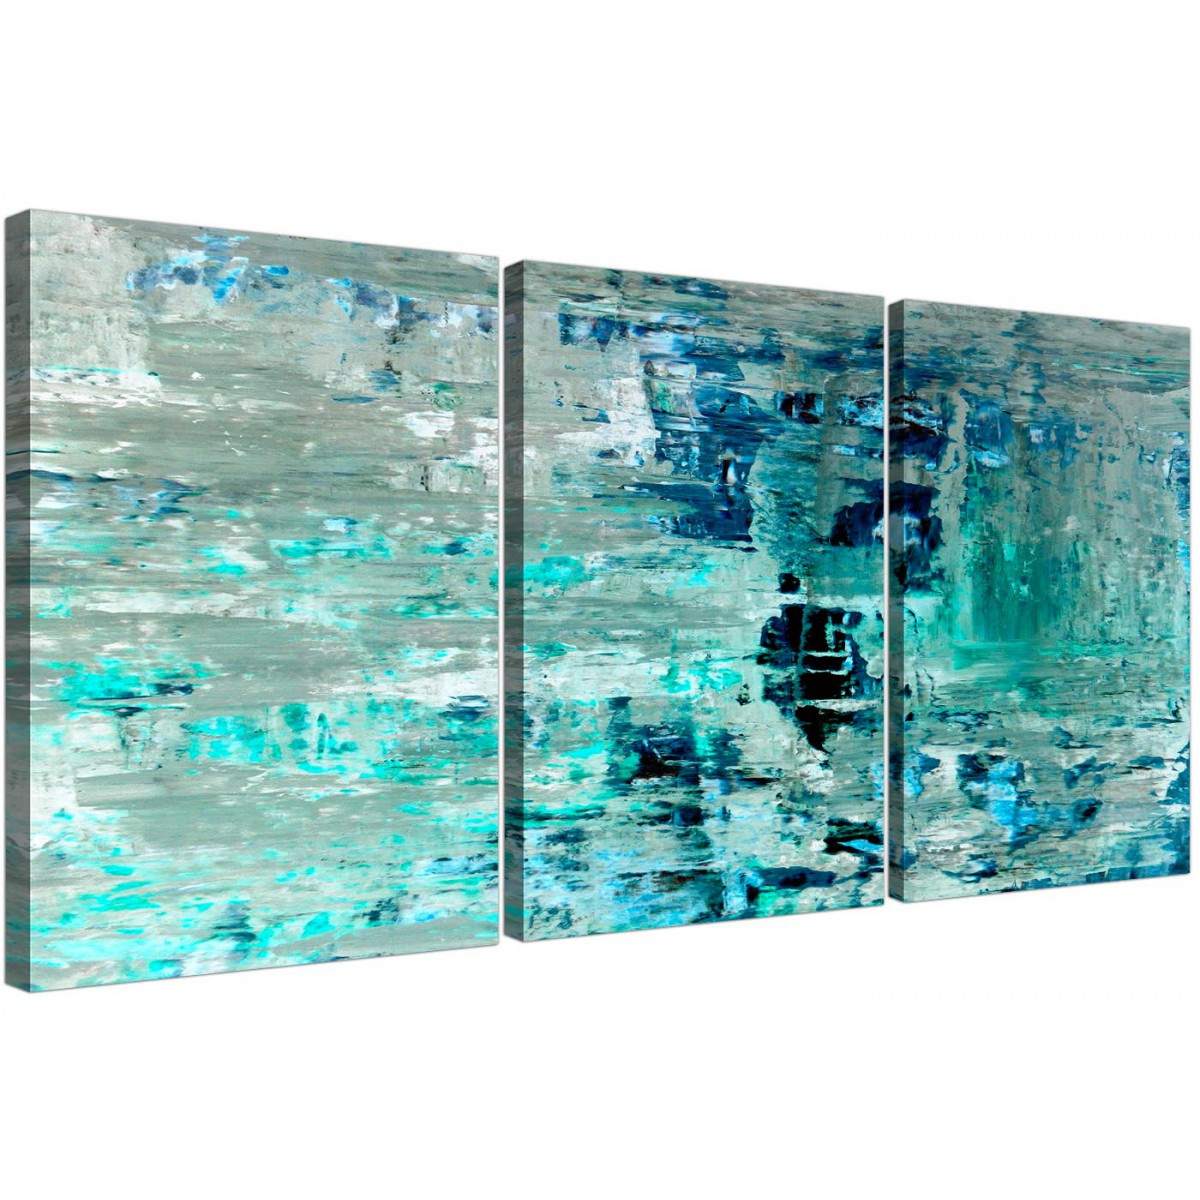 Turquoise Teal Abstract Painting Wall Art Print Canvas